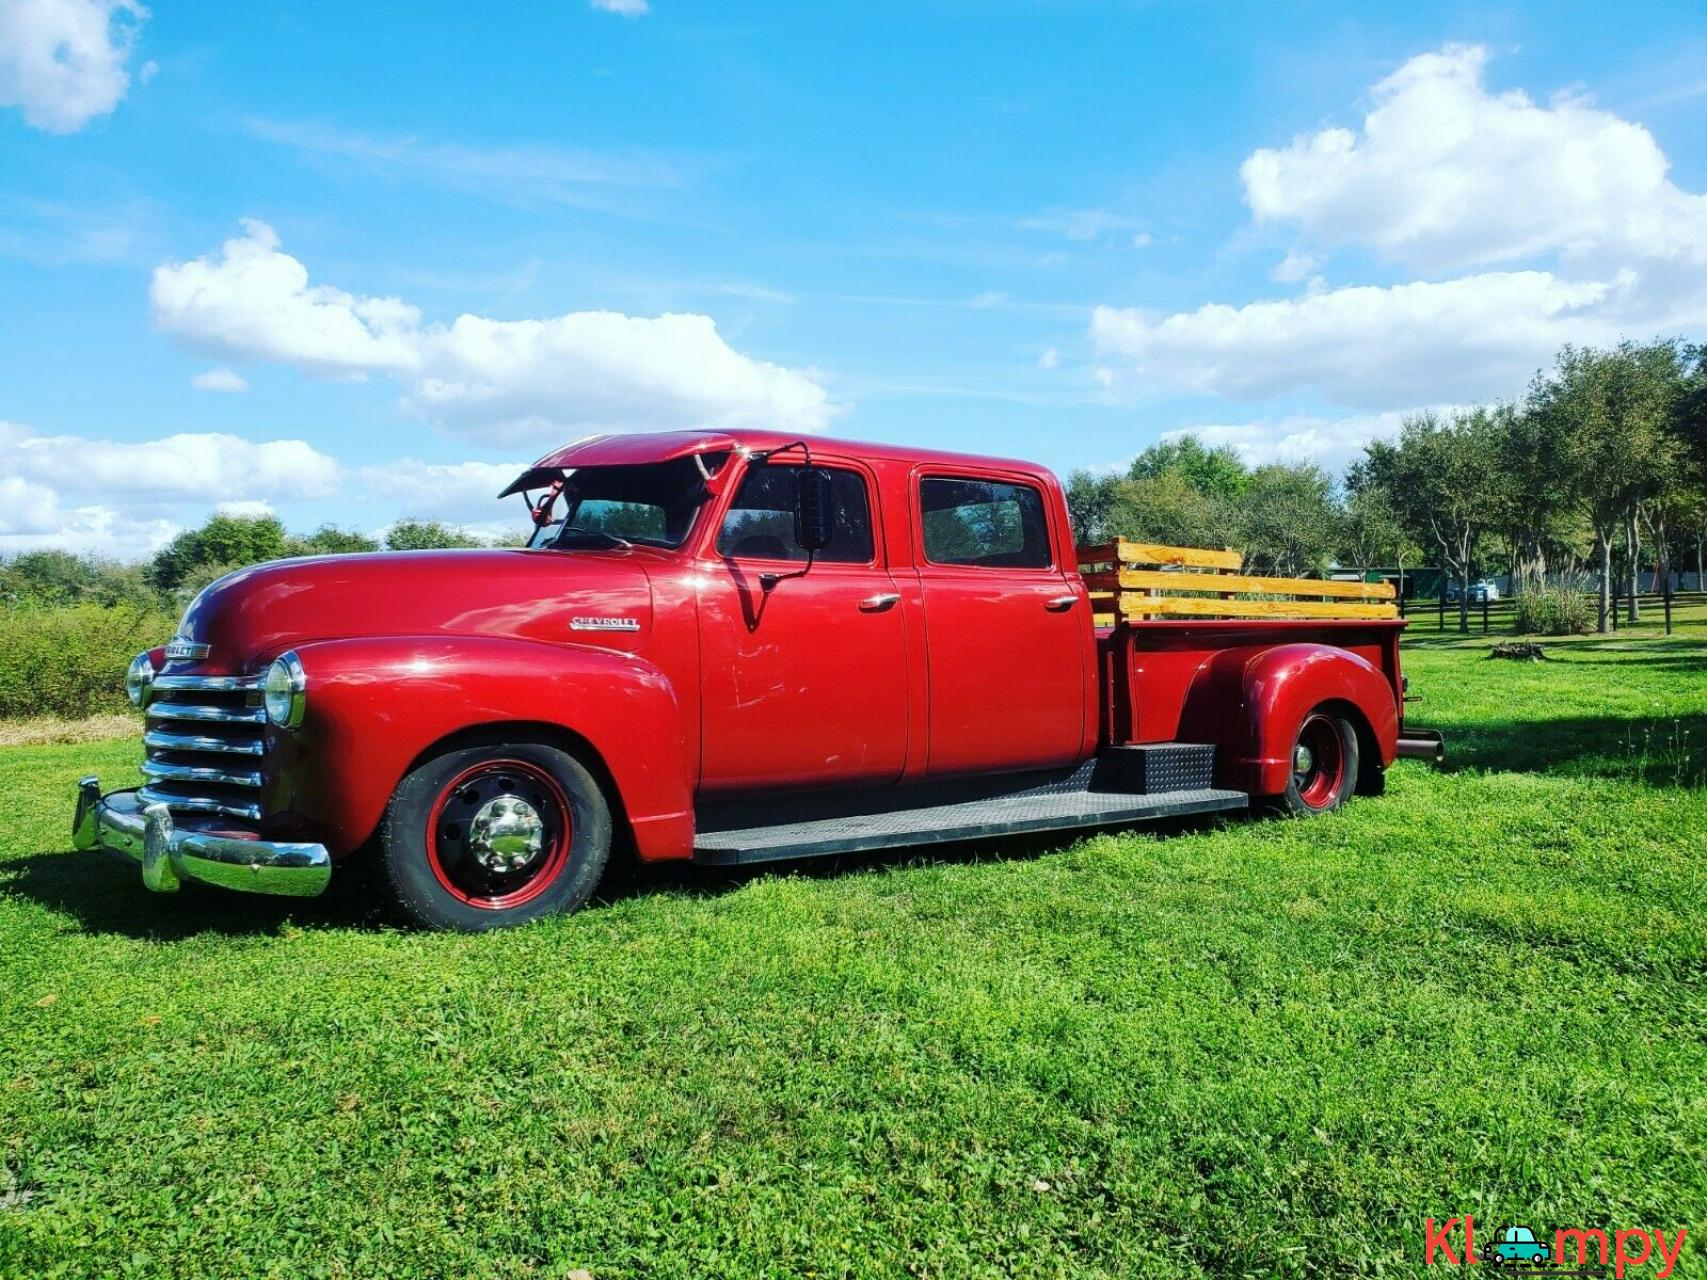 1949 Chevrolet Other Crewcab Diesel Dually - 1/14